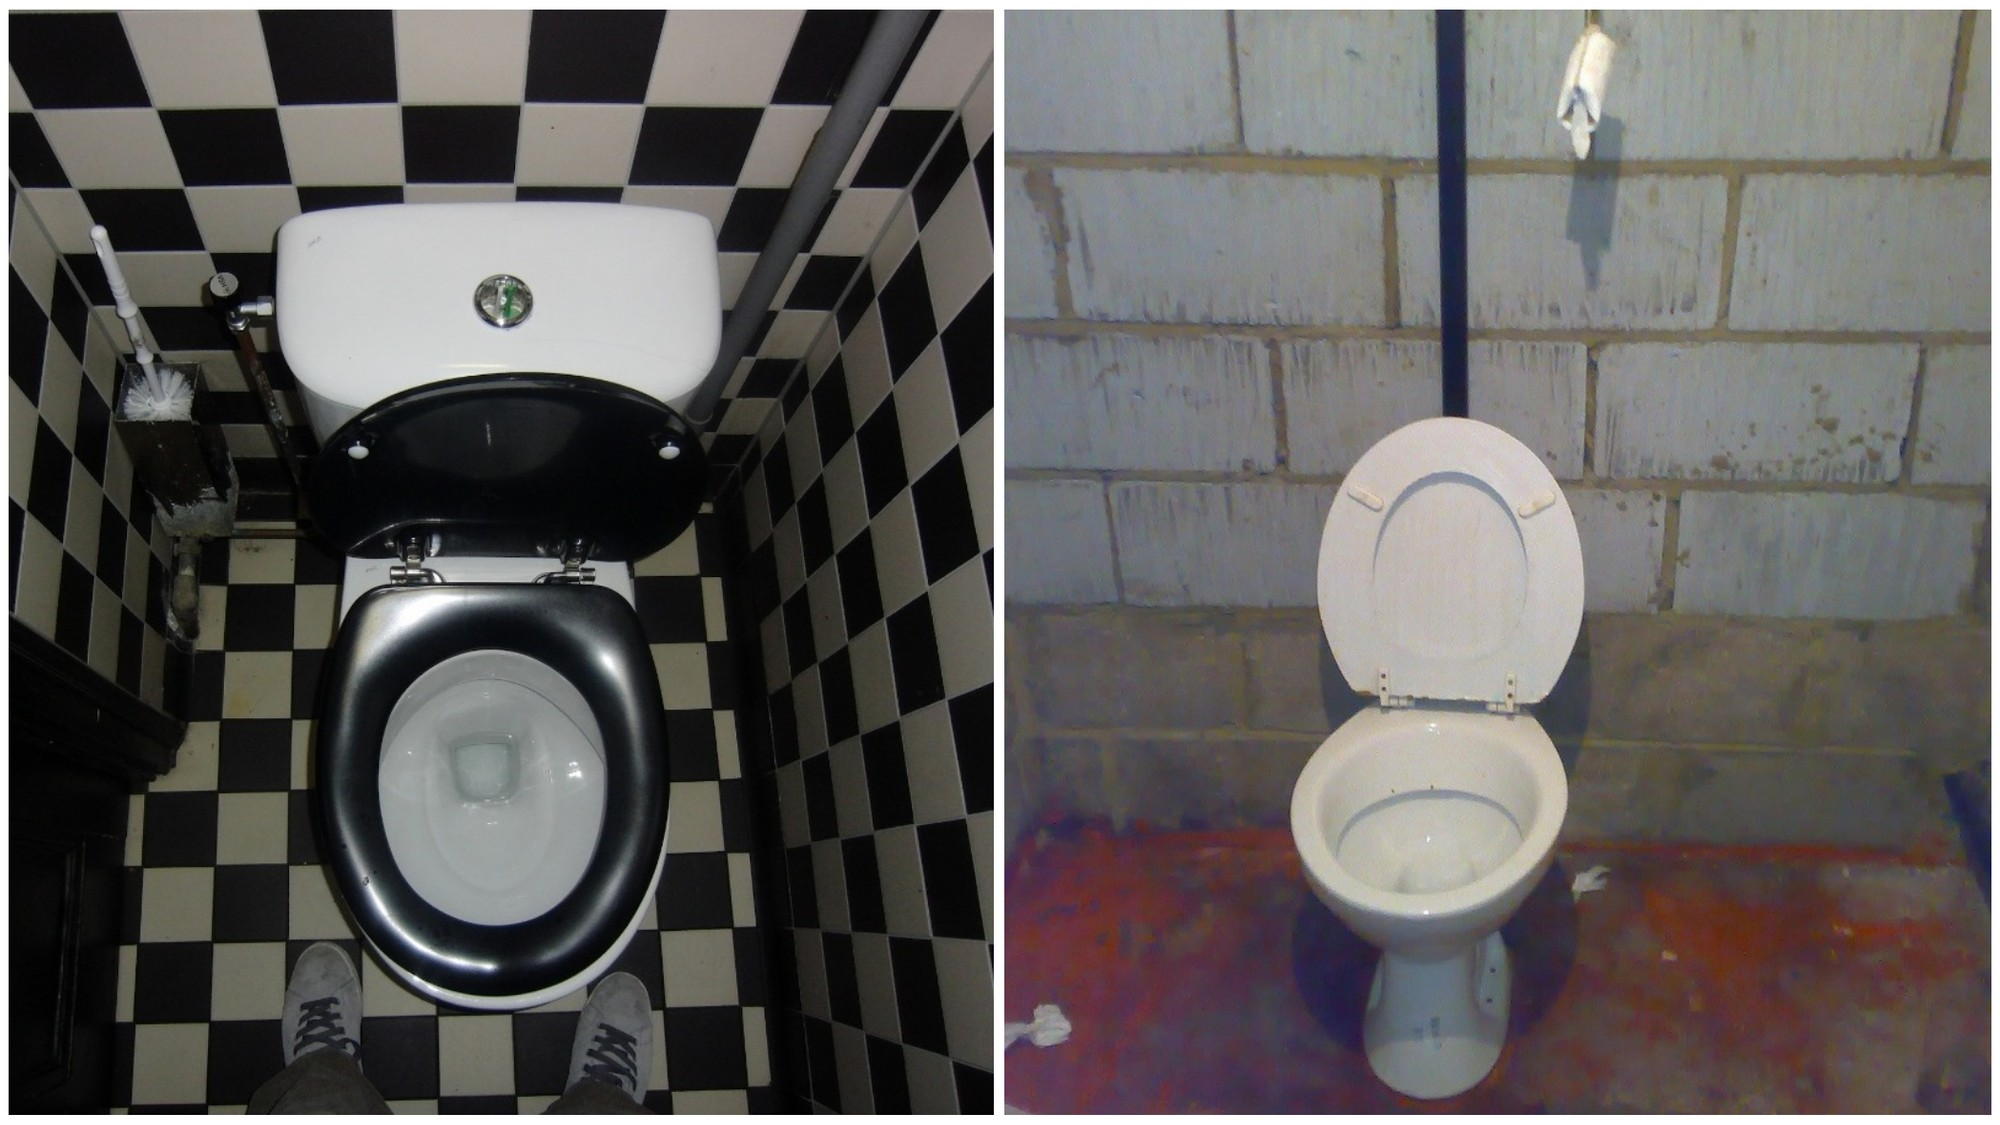 Weird Cursed Toilets With Menacing Auras 6